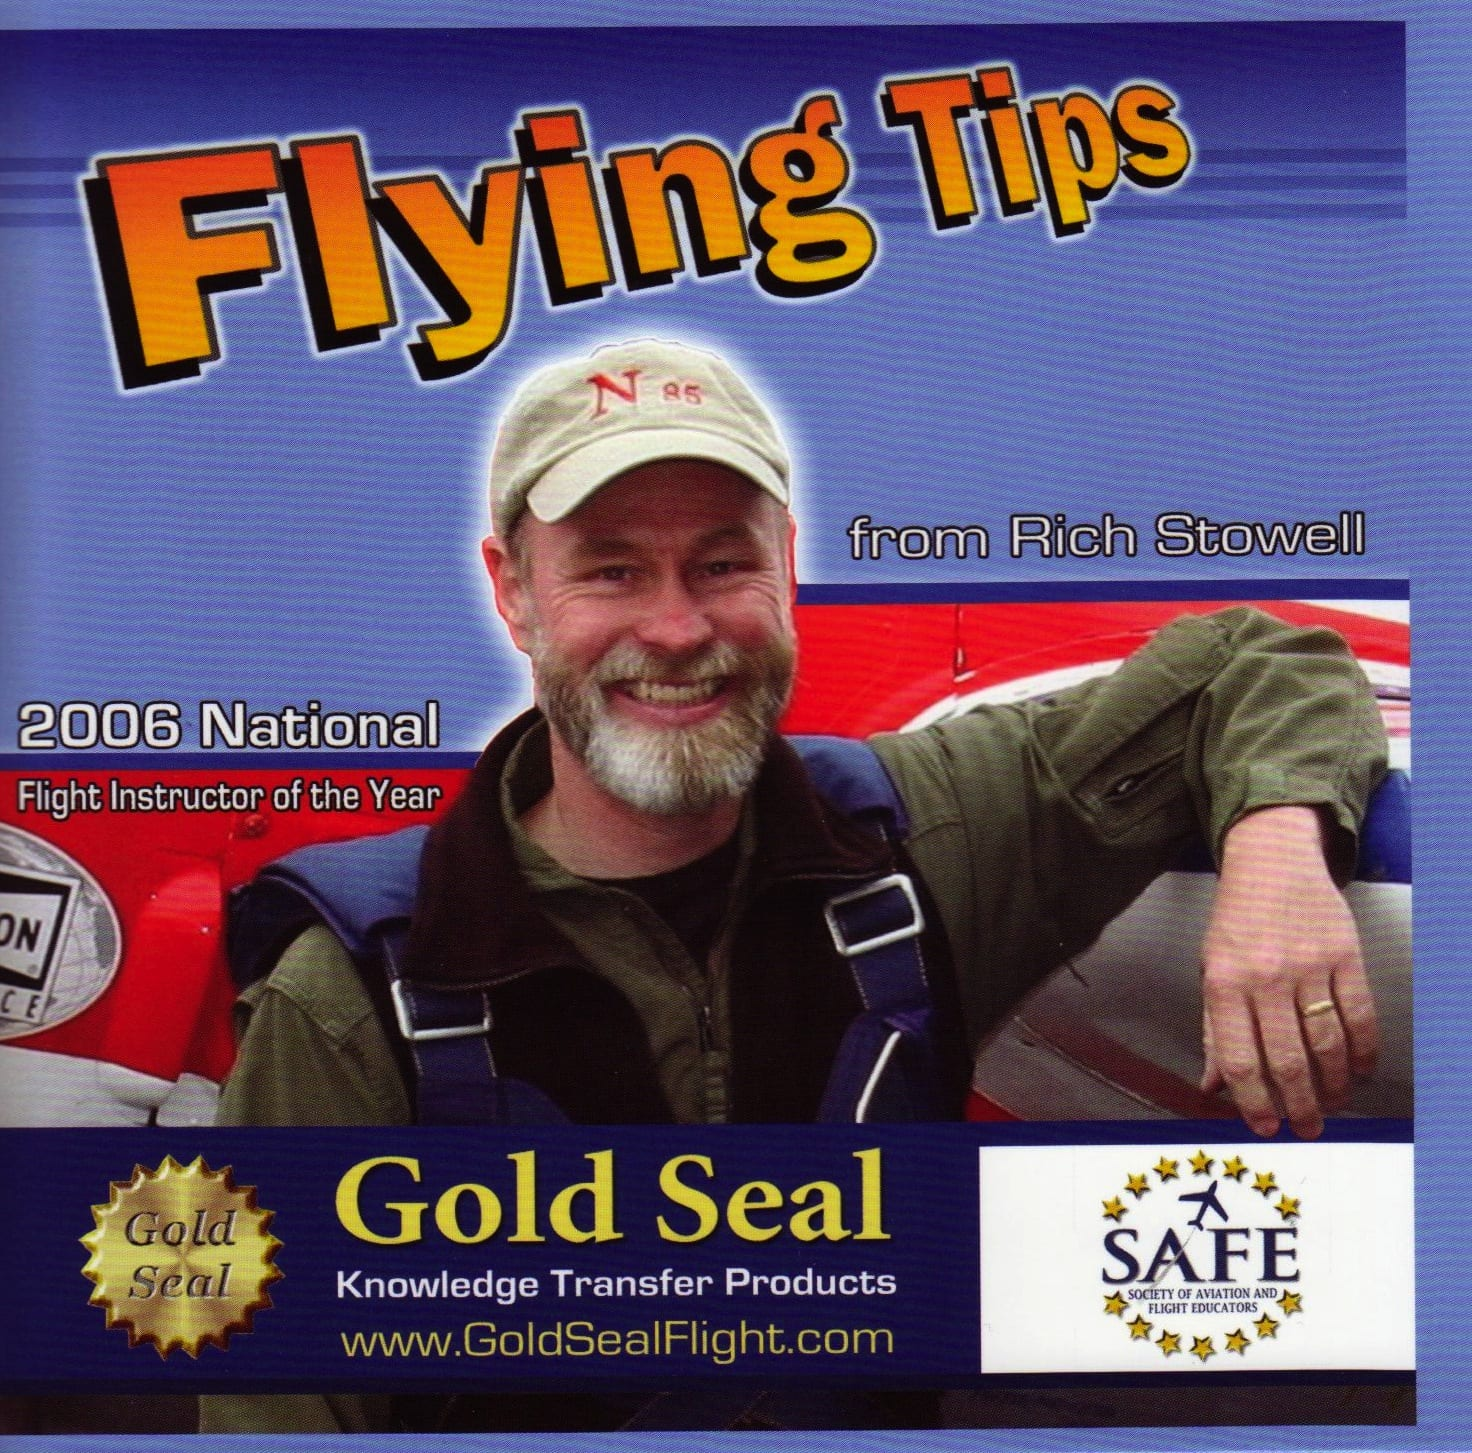 SAFE offers 'Flying Tips' CDs to members